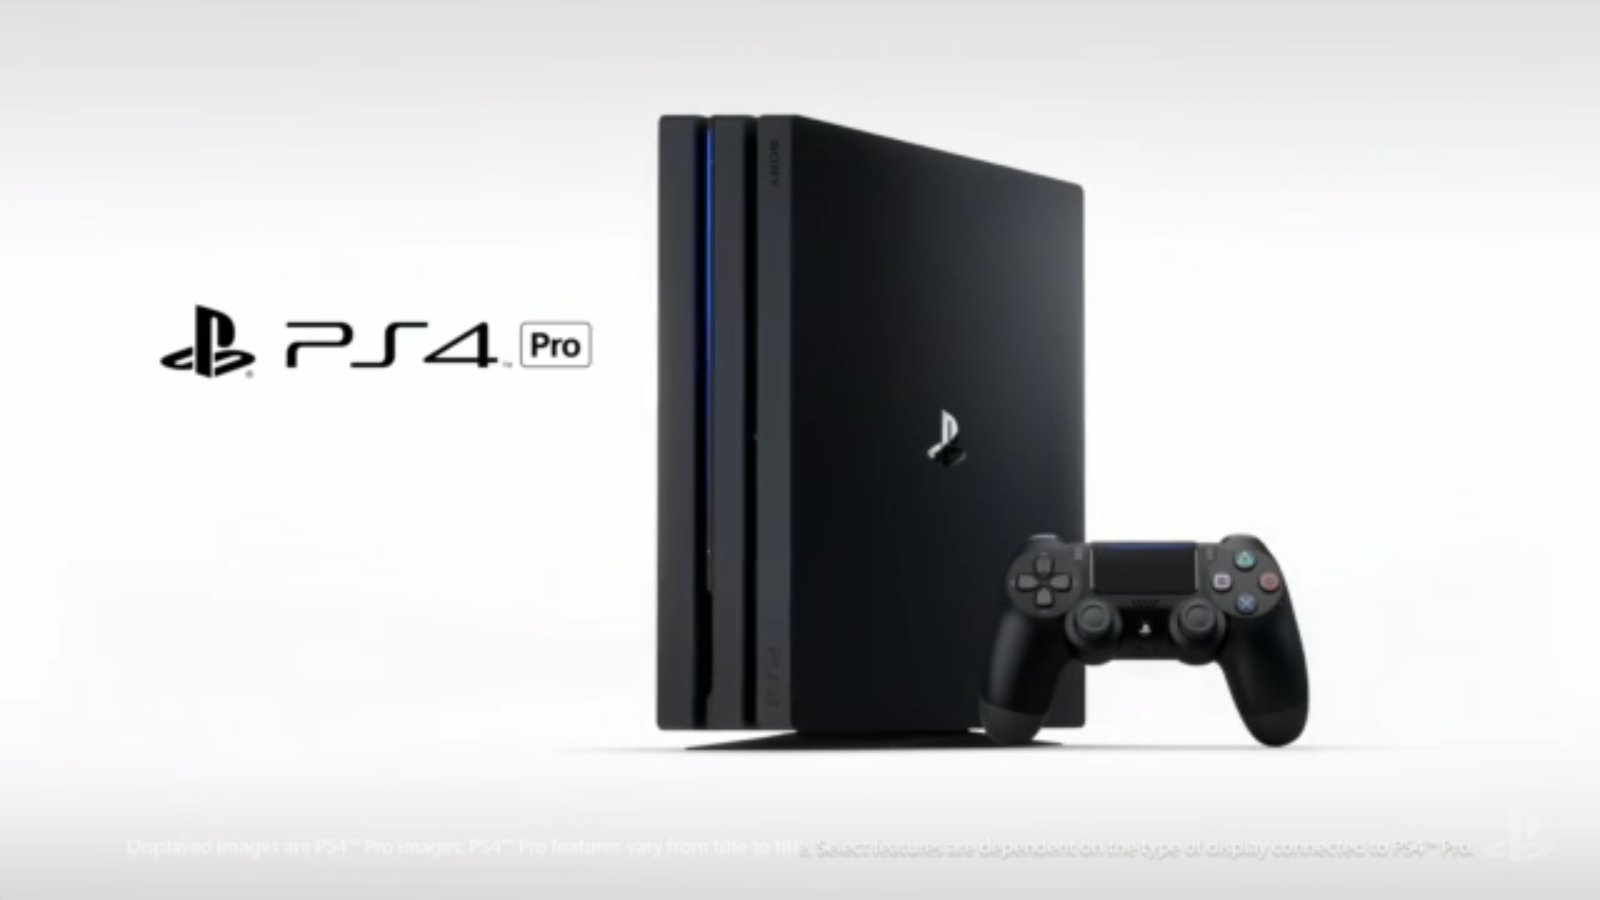 sony ps4 neo release preis technische daten. Black Bedroom Furniture Sets. Home Design Ideas